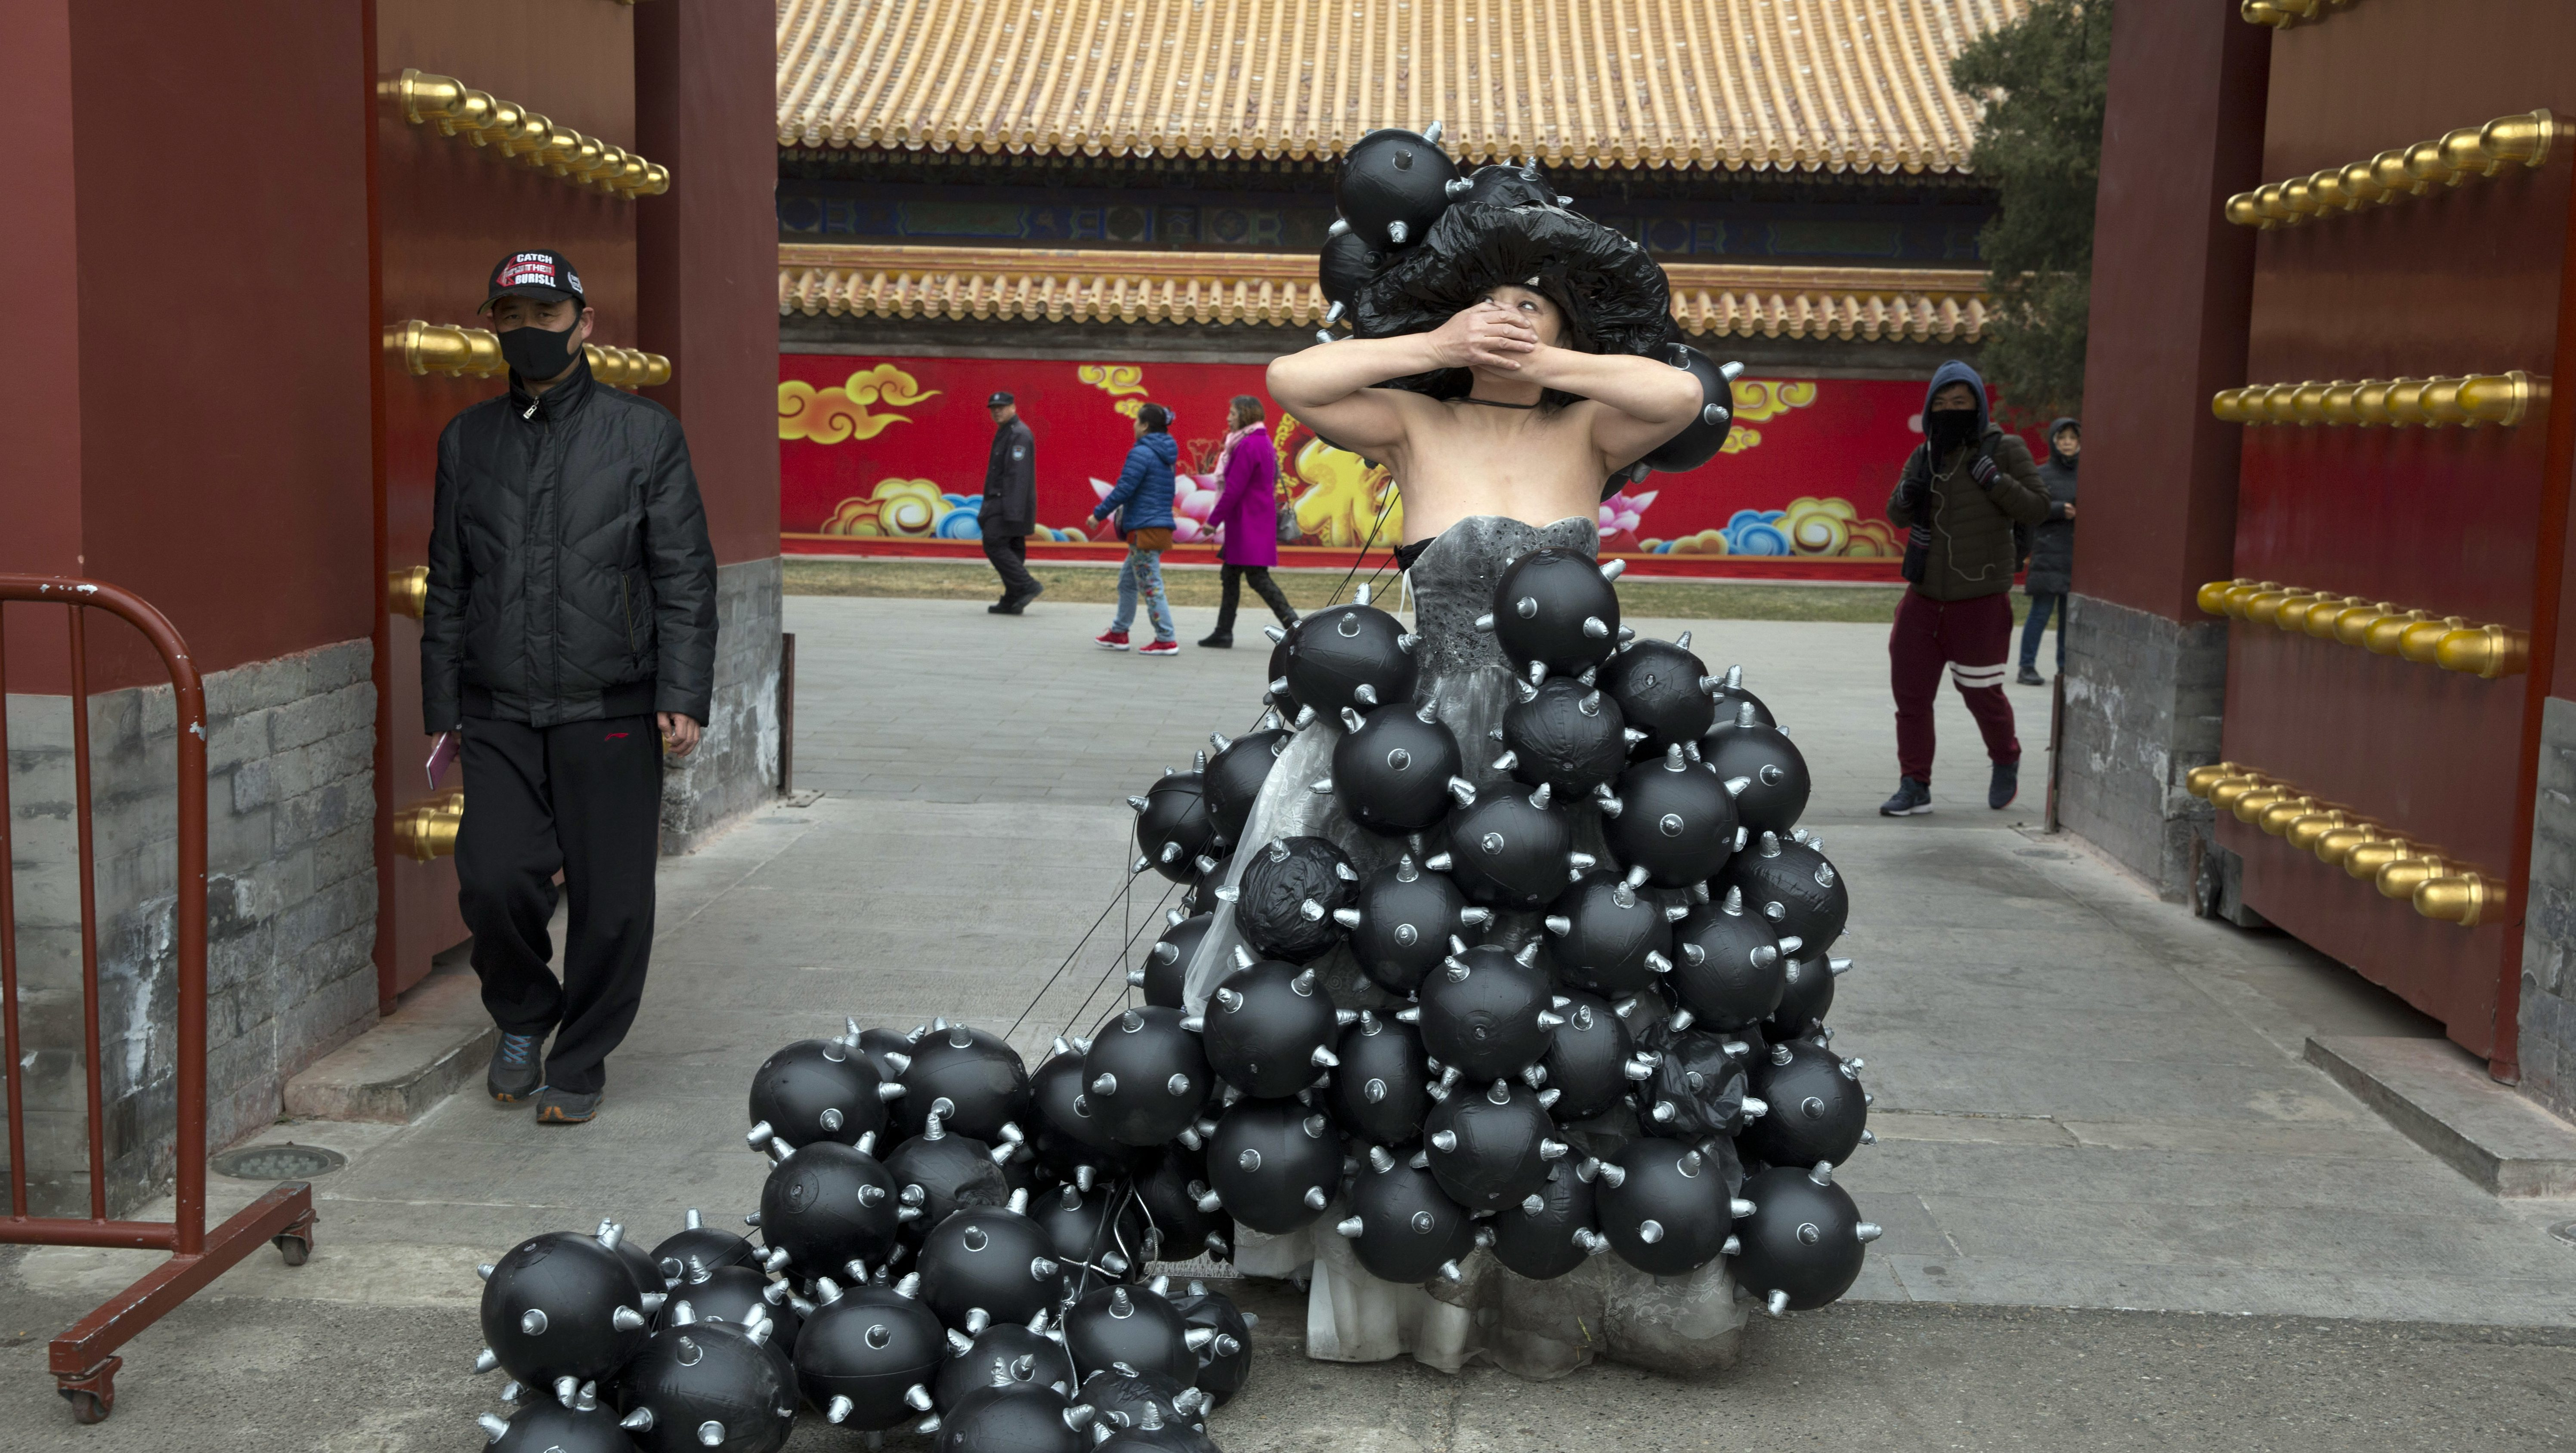 Performance artiste Kong Ning dresses in a gown depicting black granule during a street performance to raise awareness of air pollution in Beijing on Sunday, March 4, 2018. (AP Photo/Ng Han Guan)